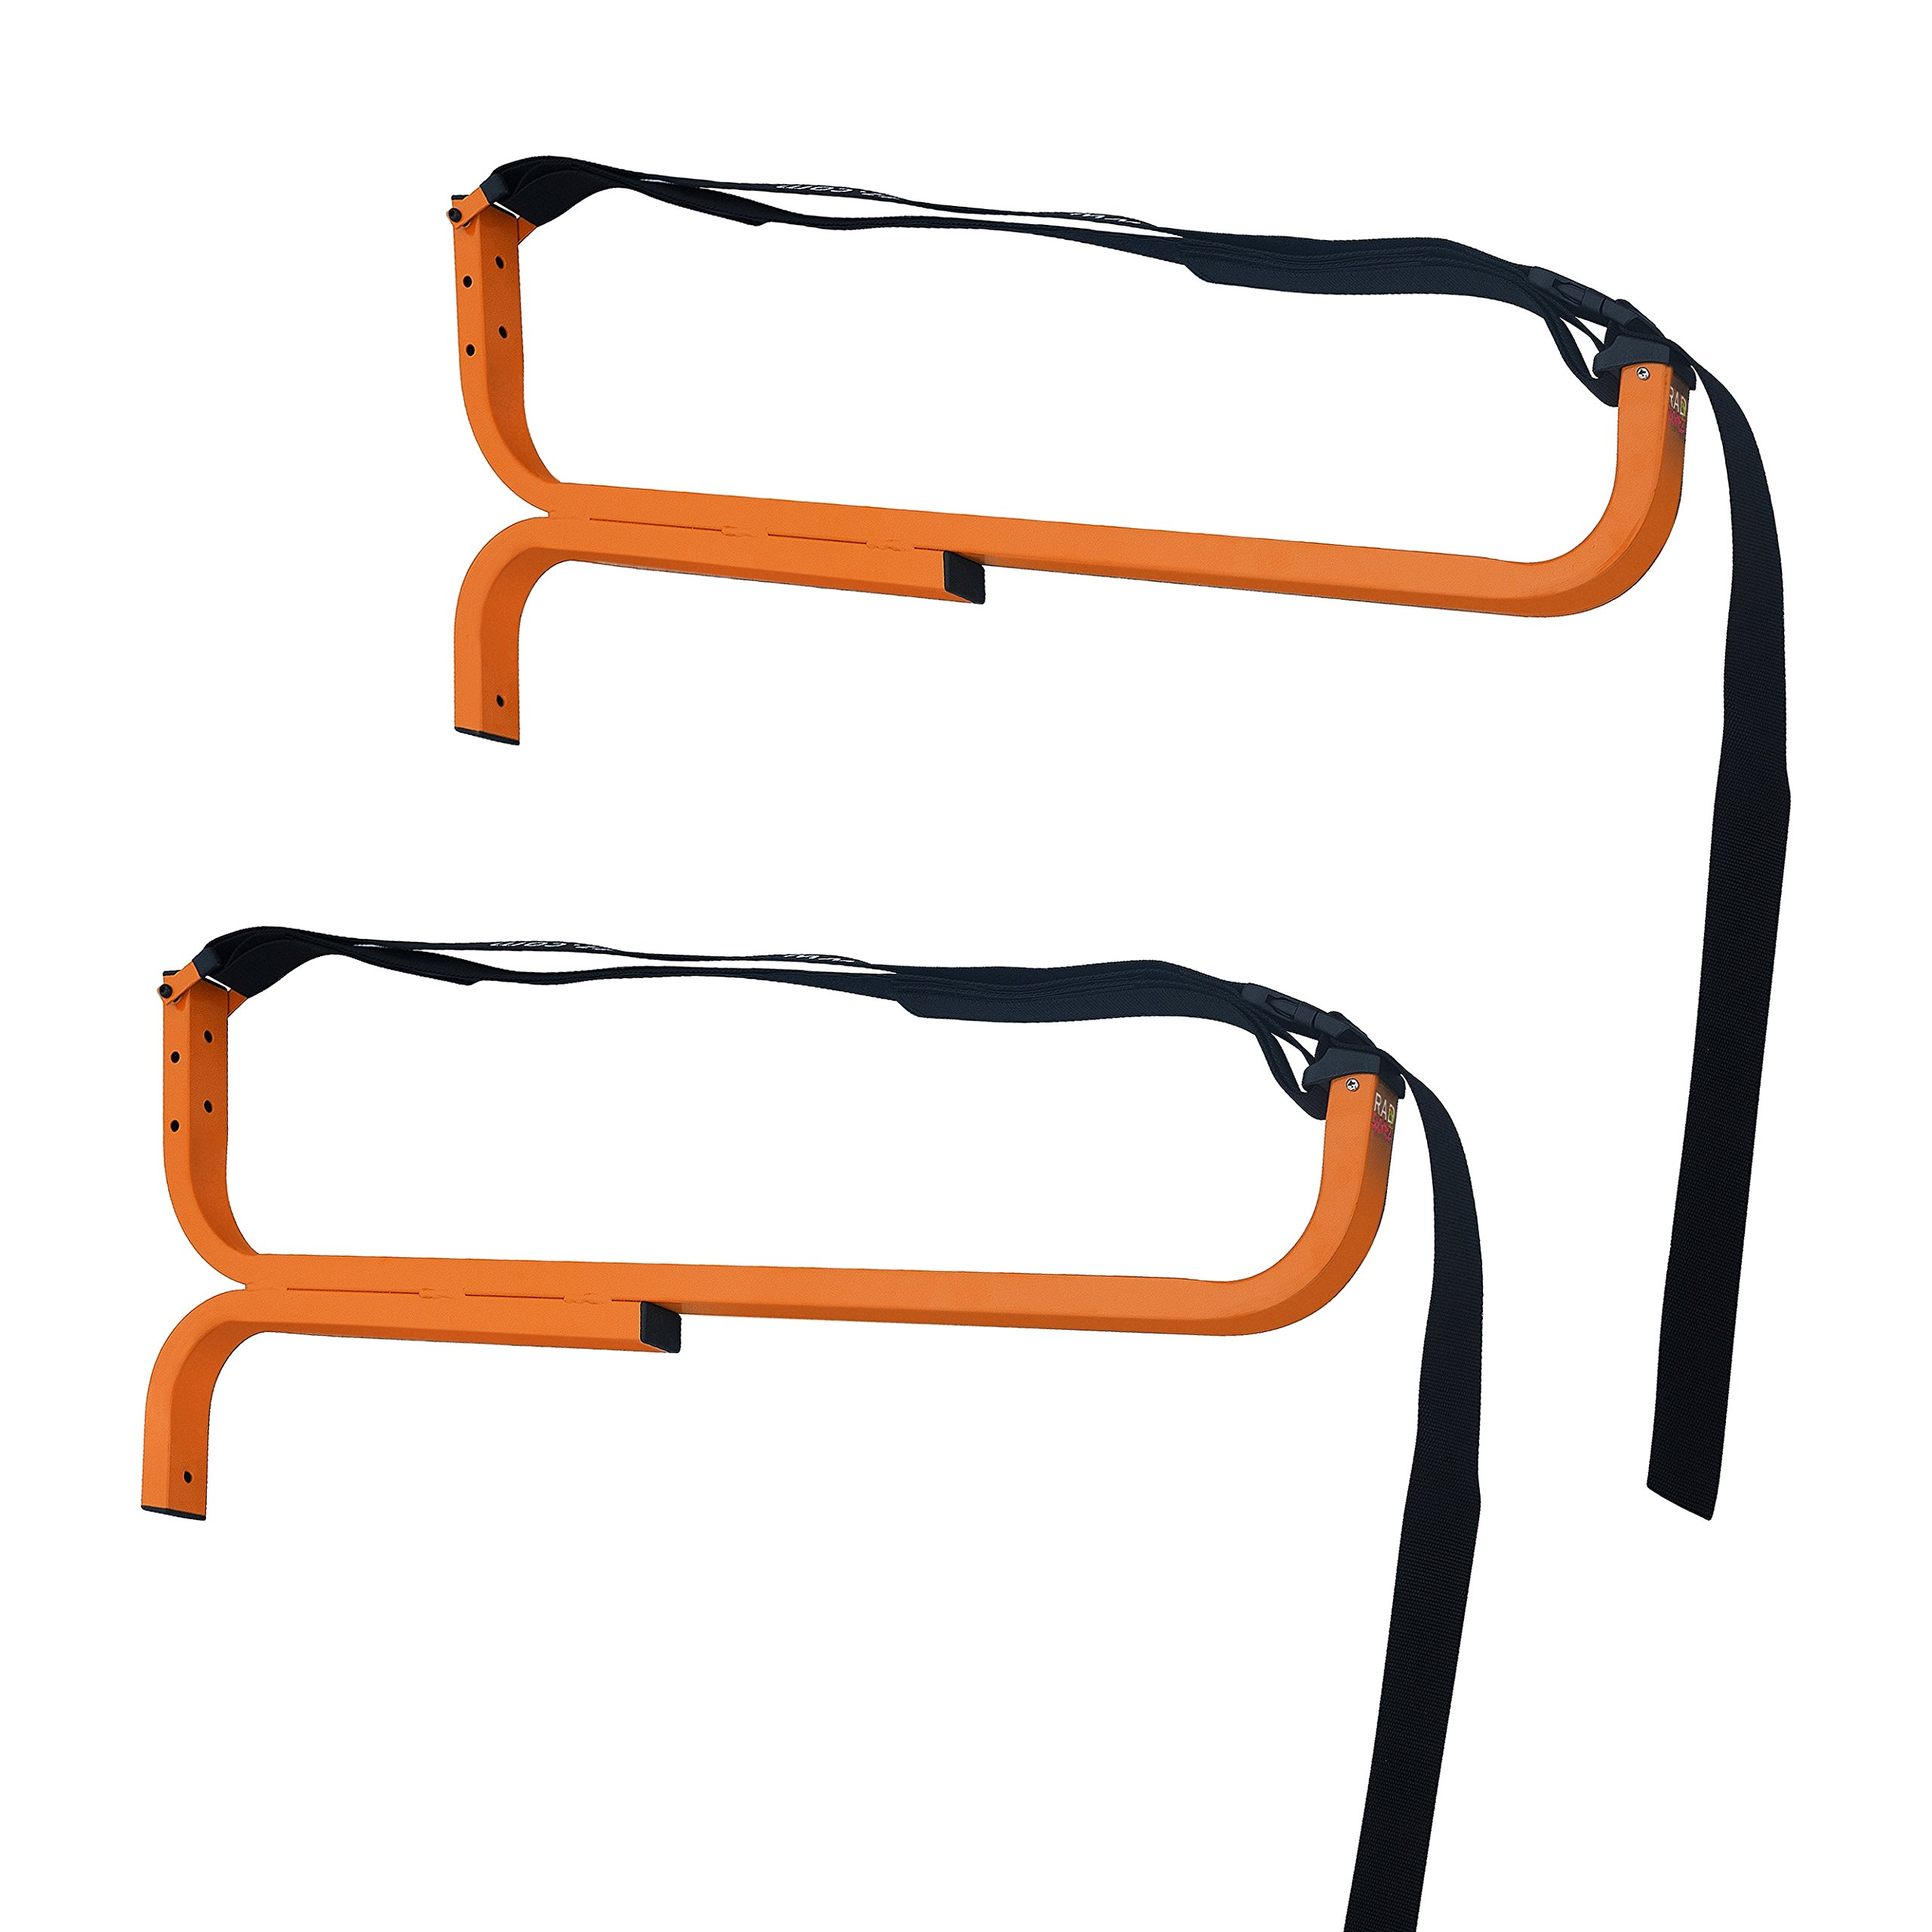 1232 RAD Sportz Level Canoe Hanger Kayak Rack and Stand-Up Paddle Board Holder Yellow by RAD Sportz